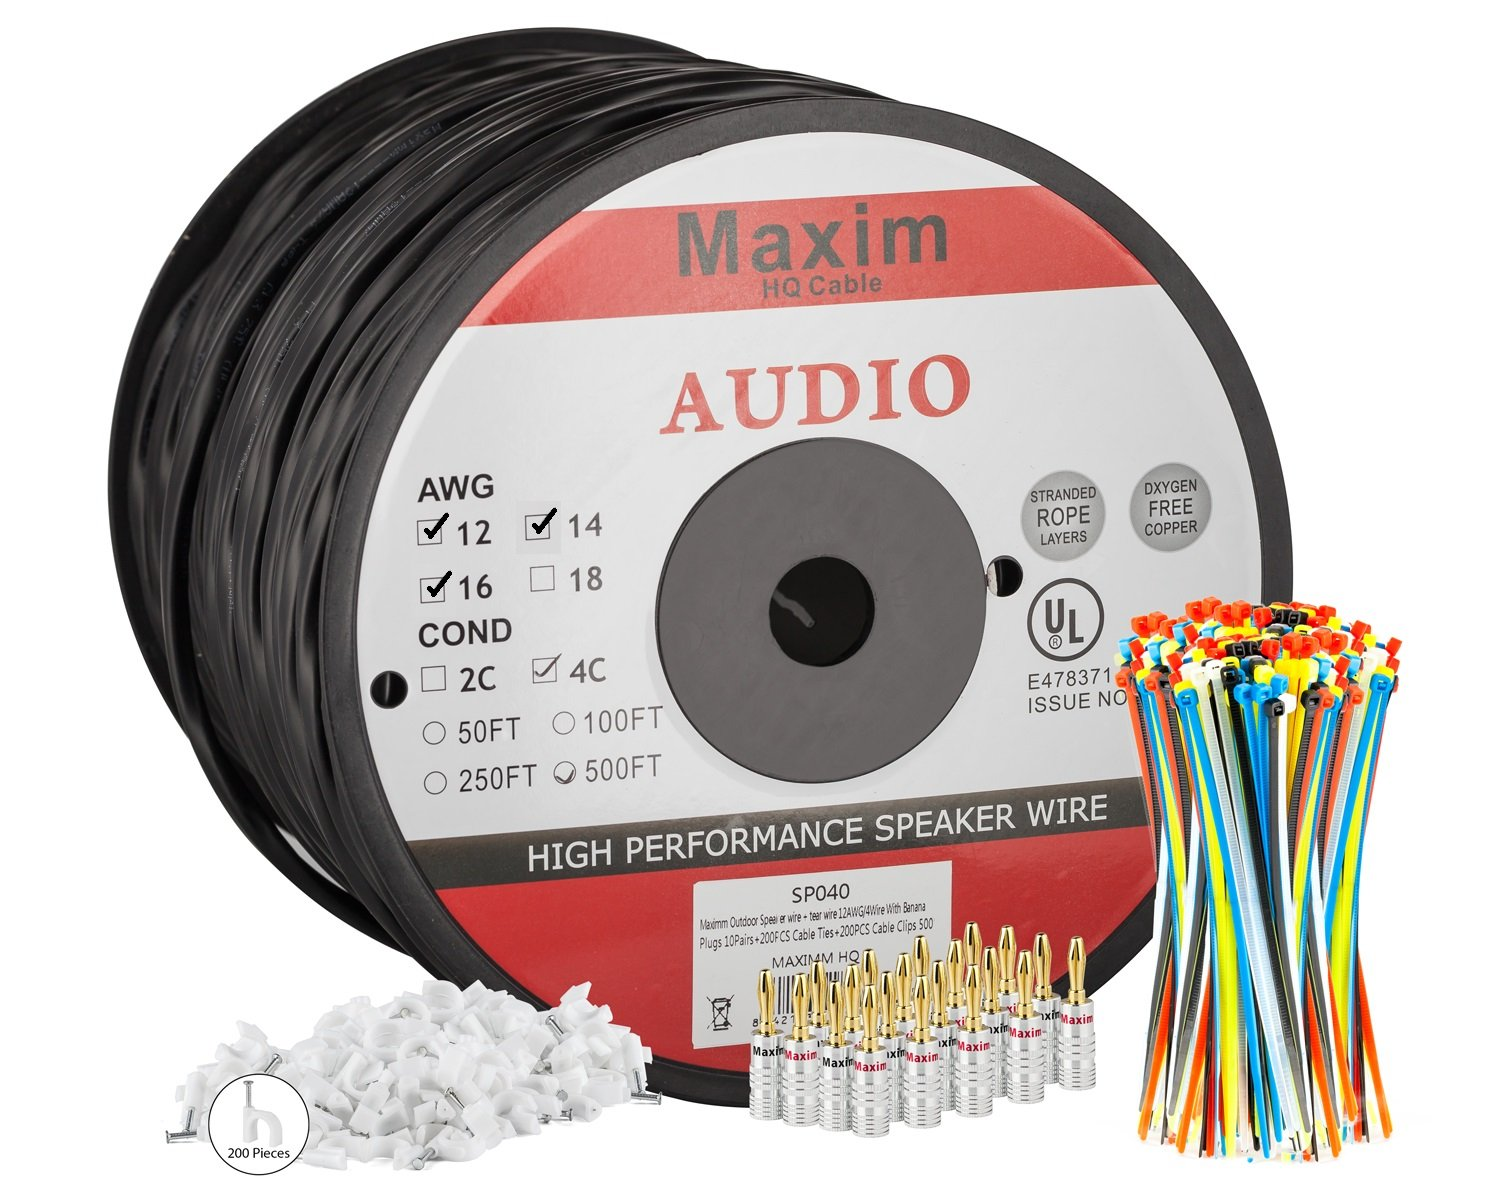 Maximm Outdoor Speaker Wire 500 Feet 12awg Cl3 Rated Residential Wiring Gage 4 Conductor Black Pure Copper Banana Plugs Cable Clips And Ties Included